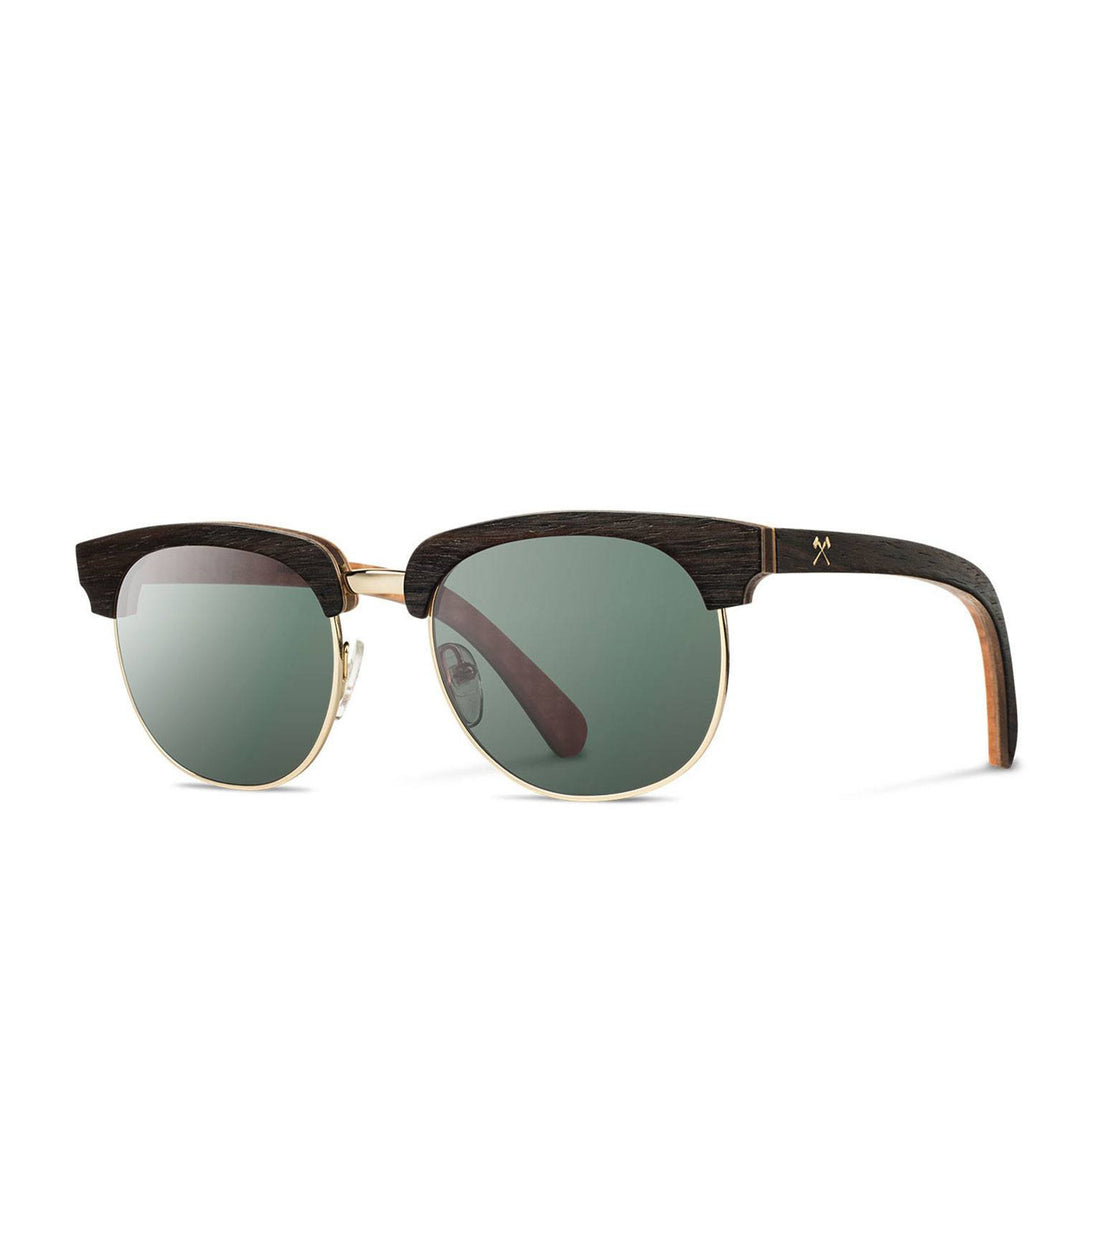 Shwood Eugene - Accessories: Eyewear - Iron and Resin